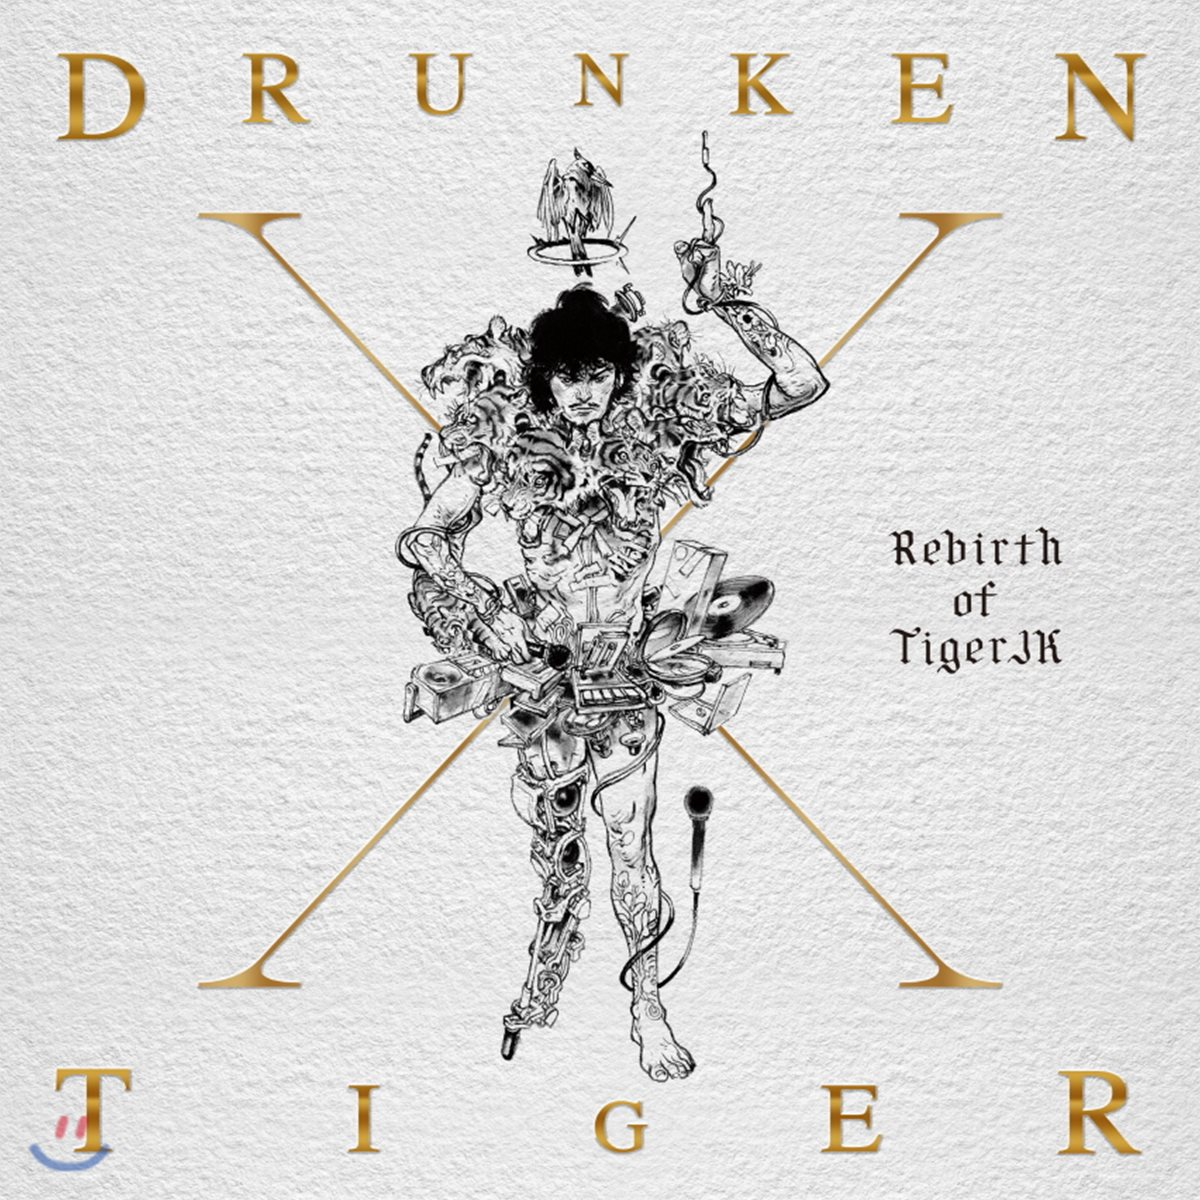 드렁큰 타이거 Rebirth of Tiger JK